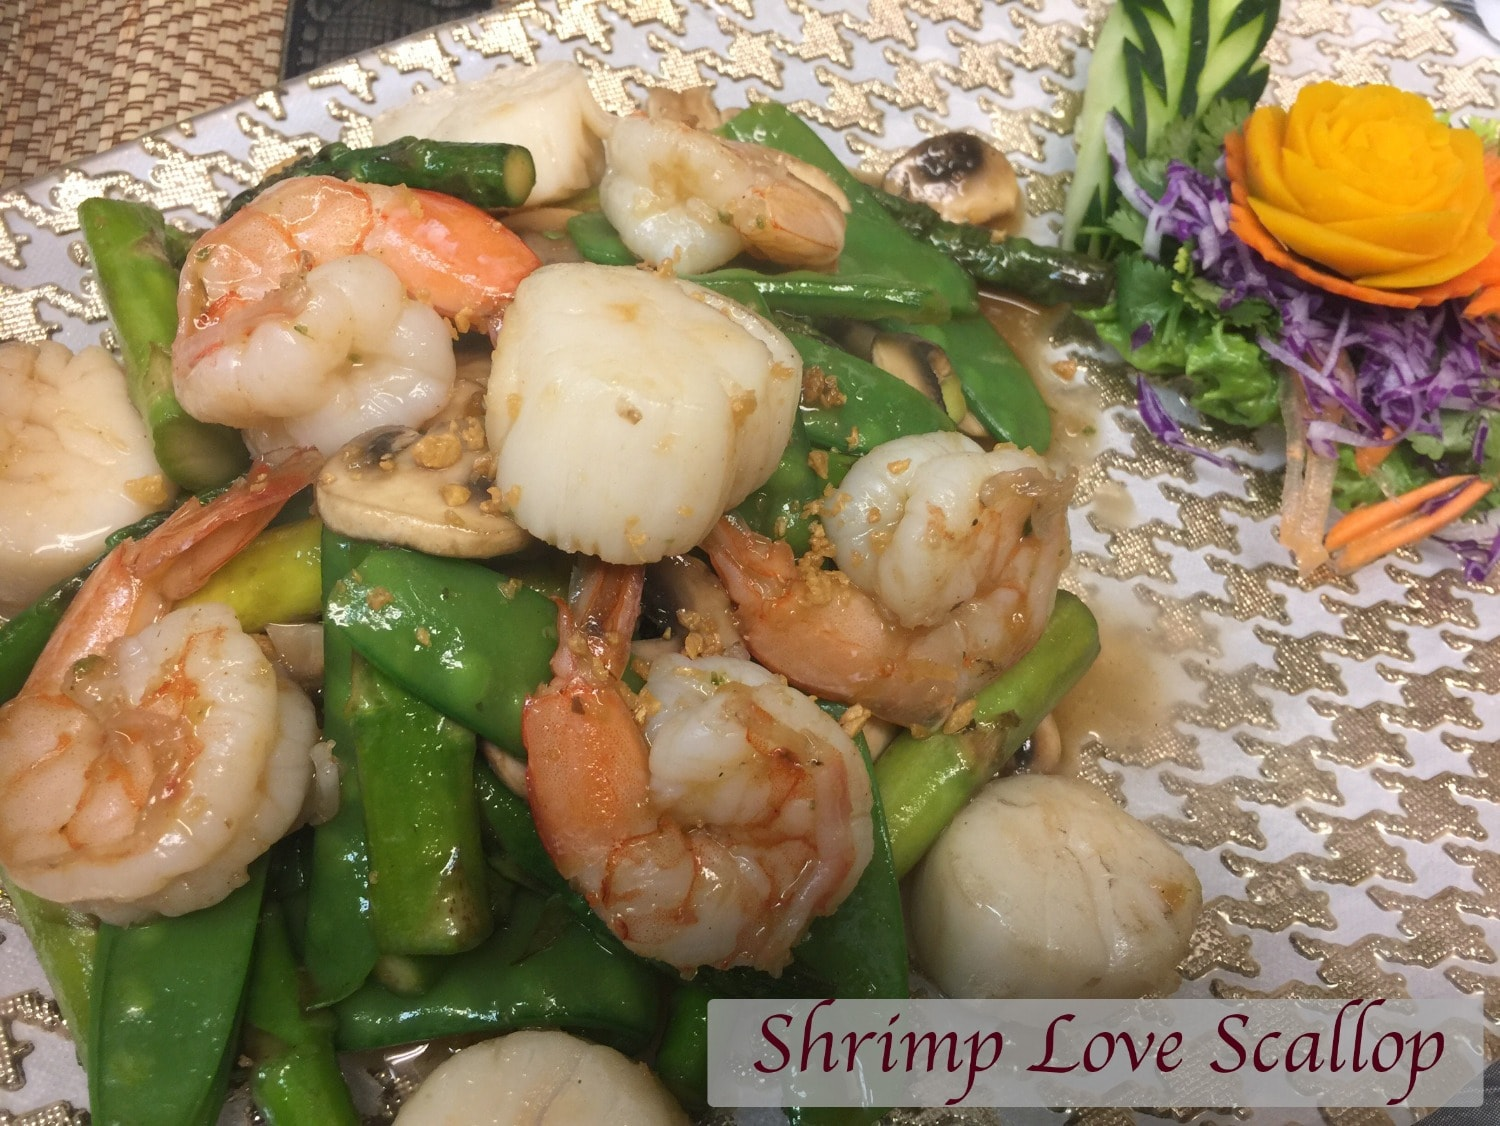 Shrimp love scallop